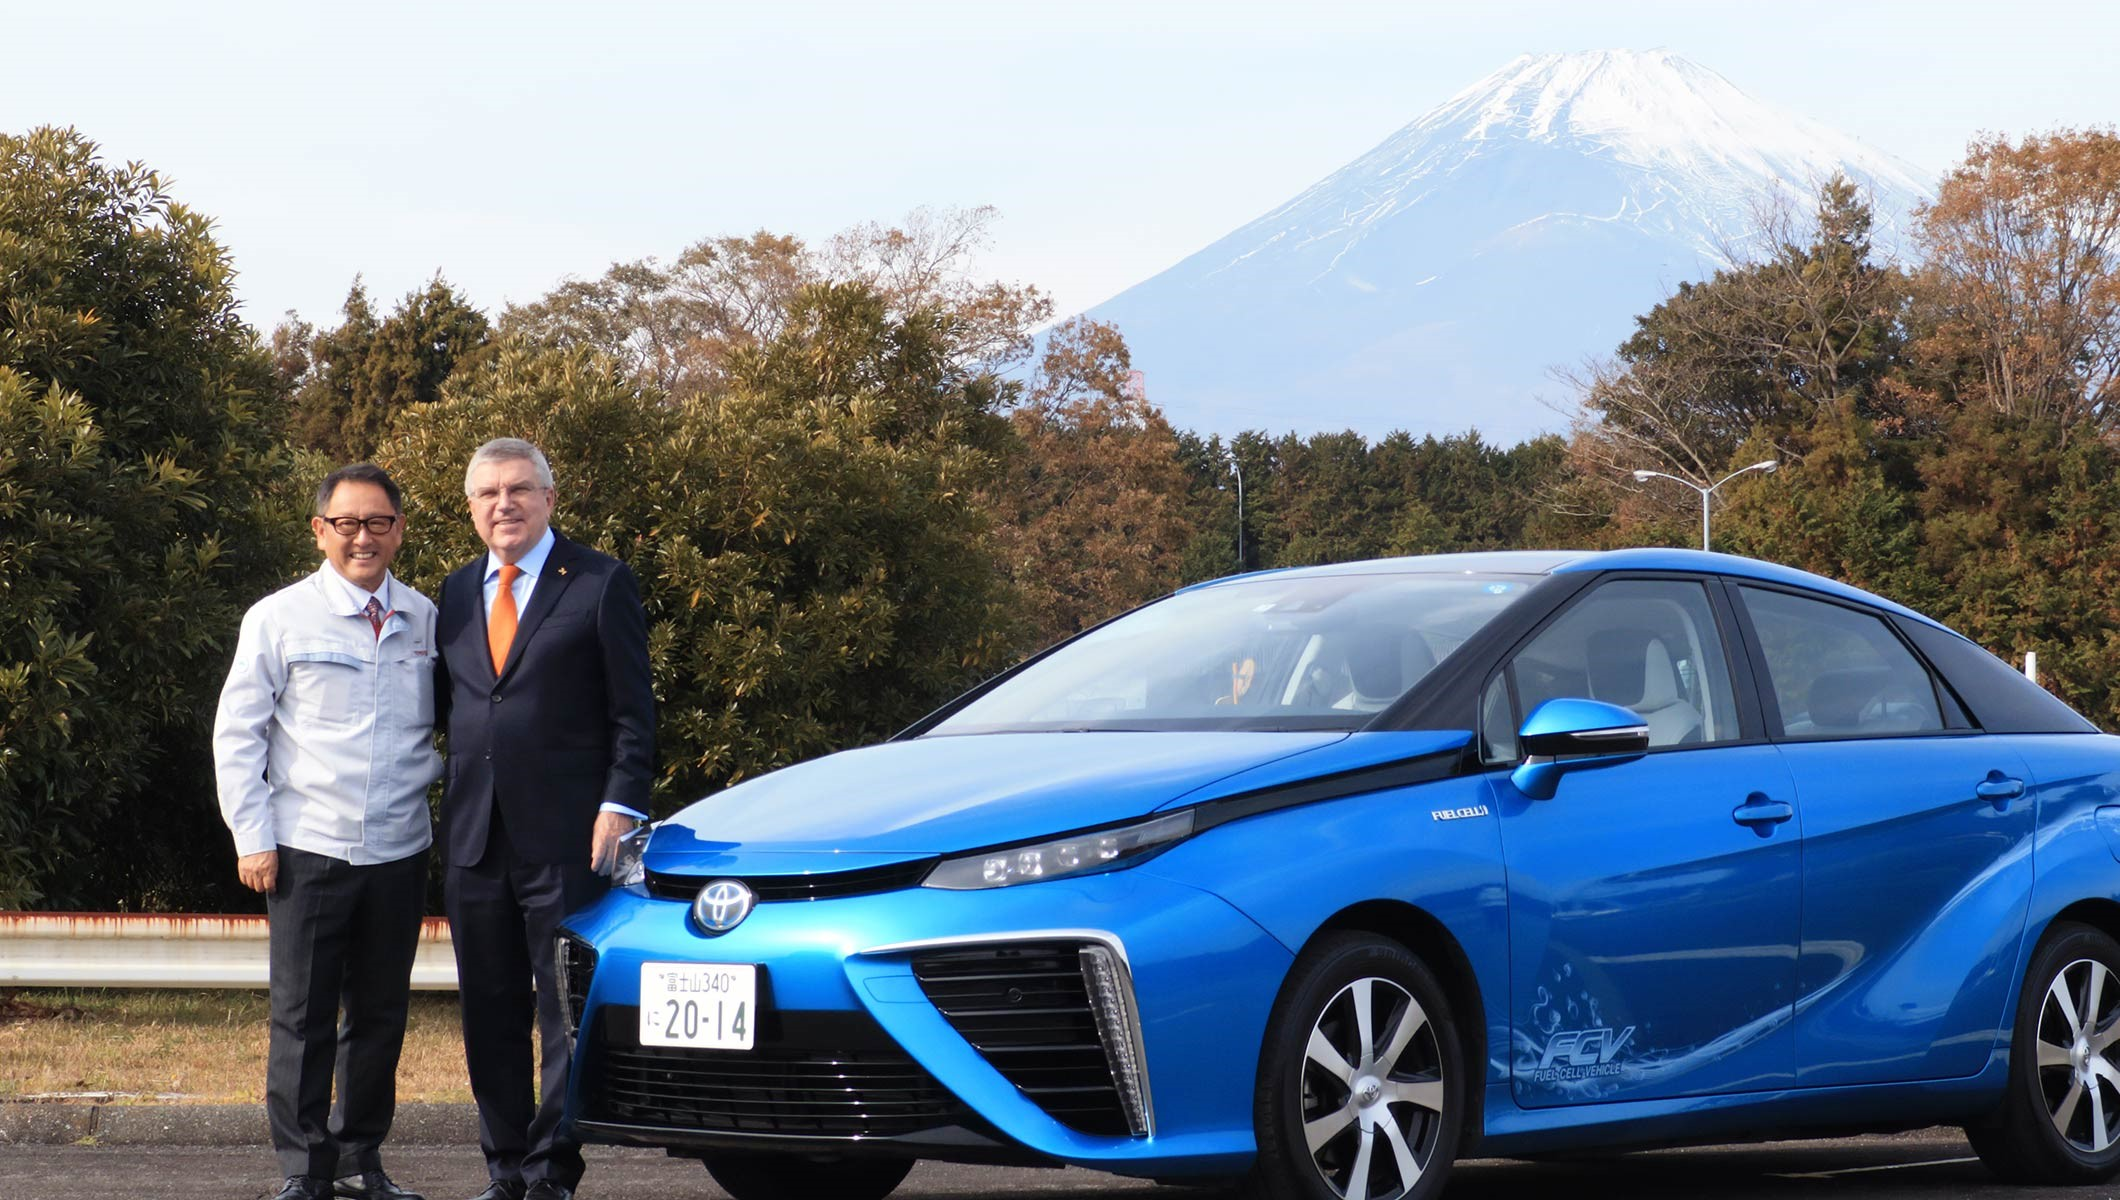 IOC President Bach with Toyota President Akio Toyoda met in November 2018 to discuss Toyota's mobility innovations. Pictured next to Toyota's Mirai FCV. Source IOC